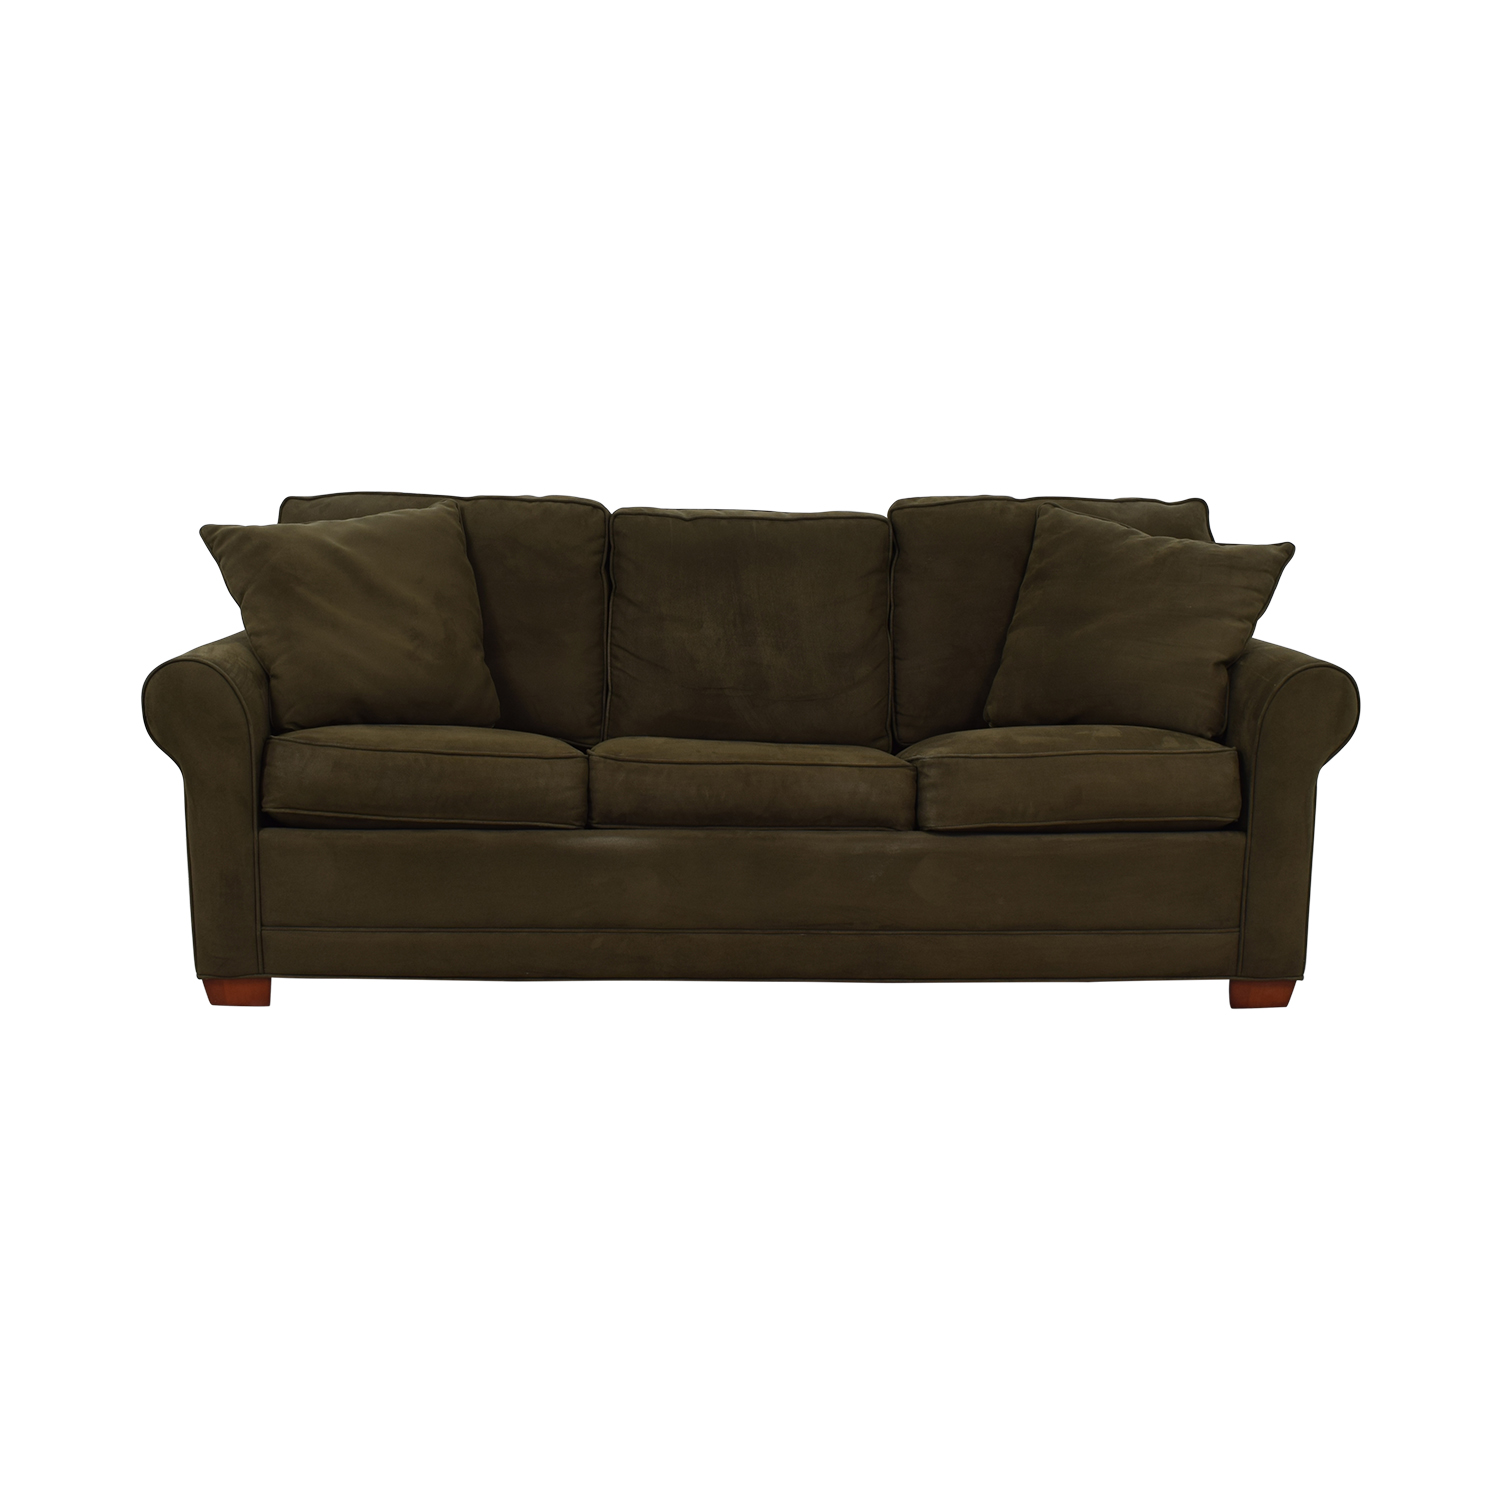 Raymour & Flanigan Raymour & Flanigan Brown Microfiber Convertible Three-Cushion Sofa Sofas